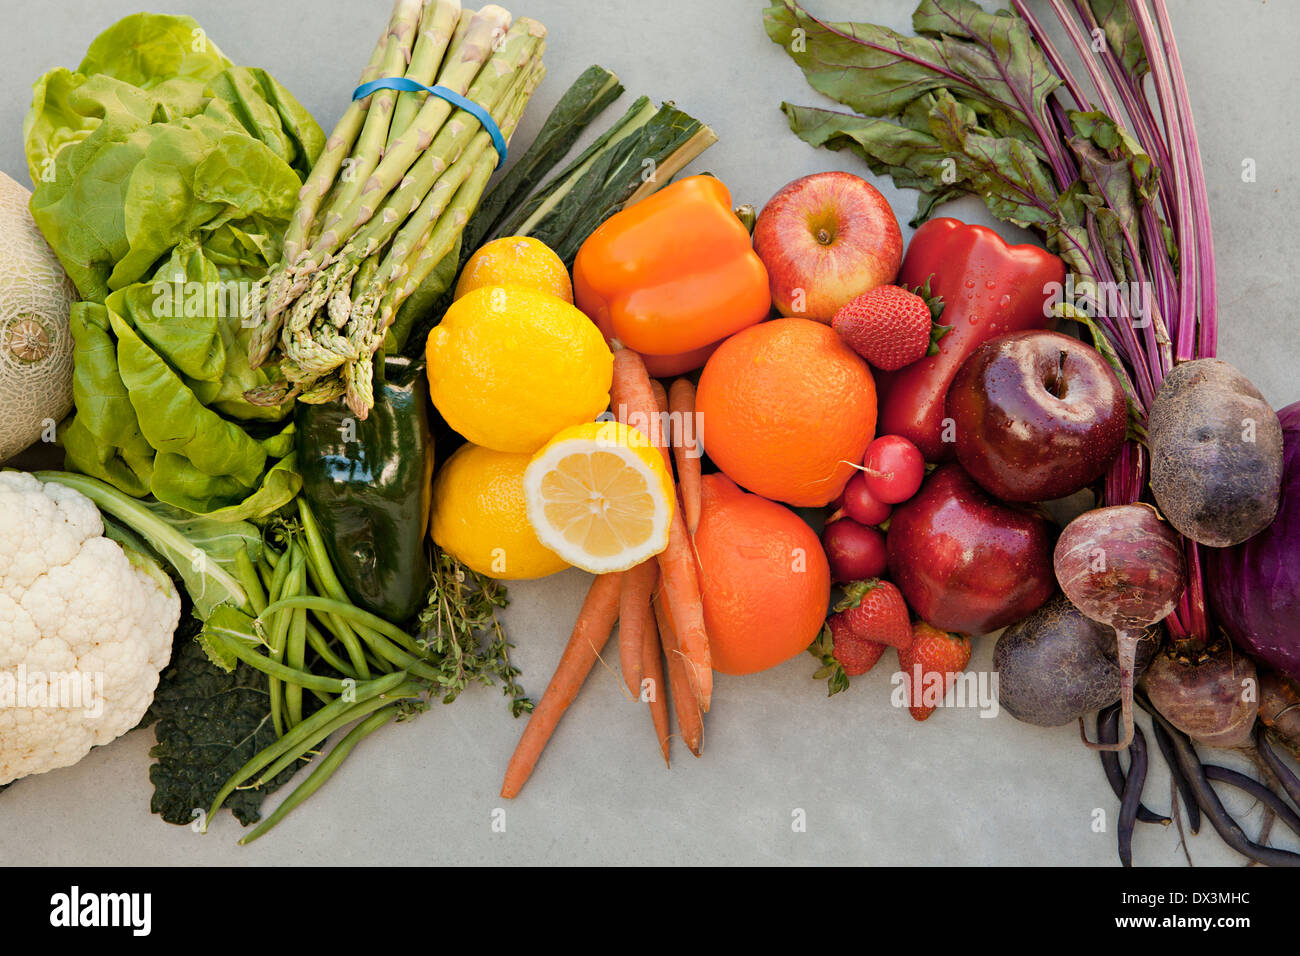 Abundant variety of multicolor fruits and vegetables organized by color on gray background, directly above - Stock Image